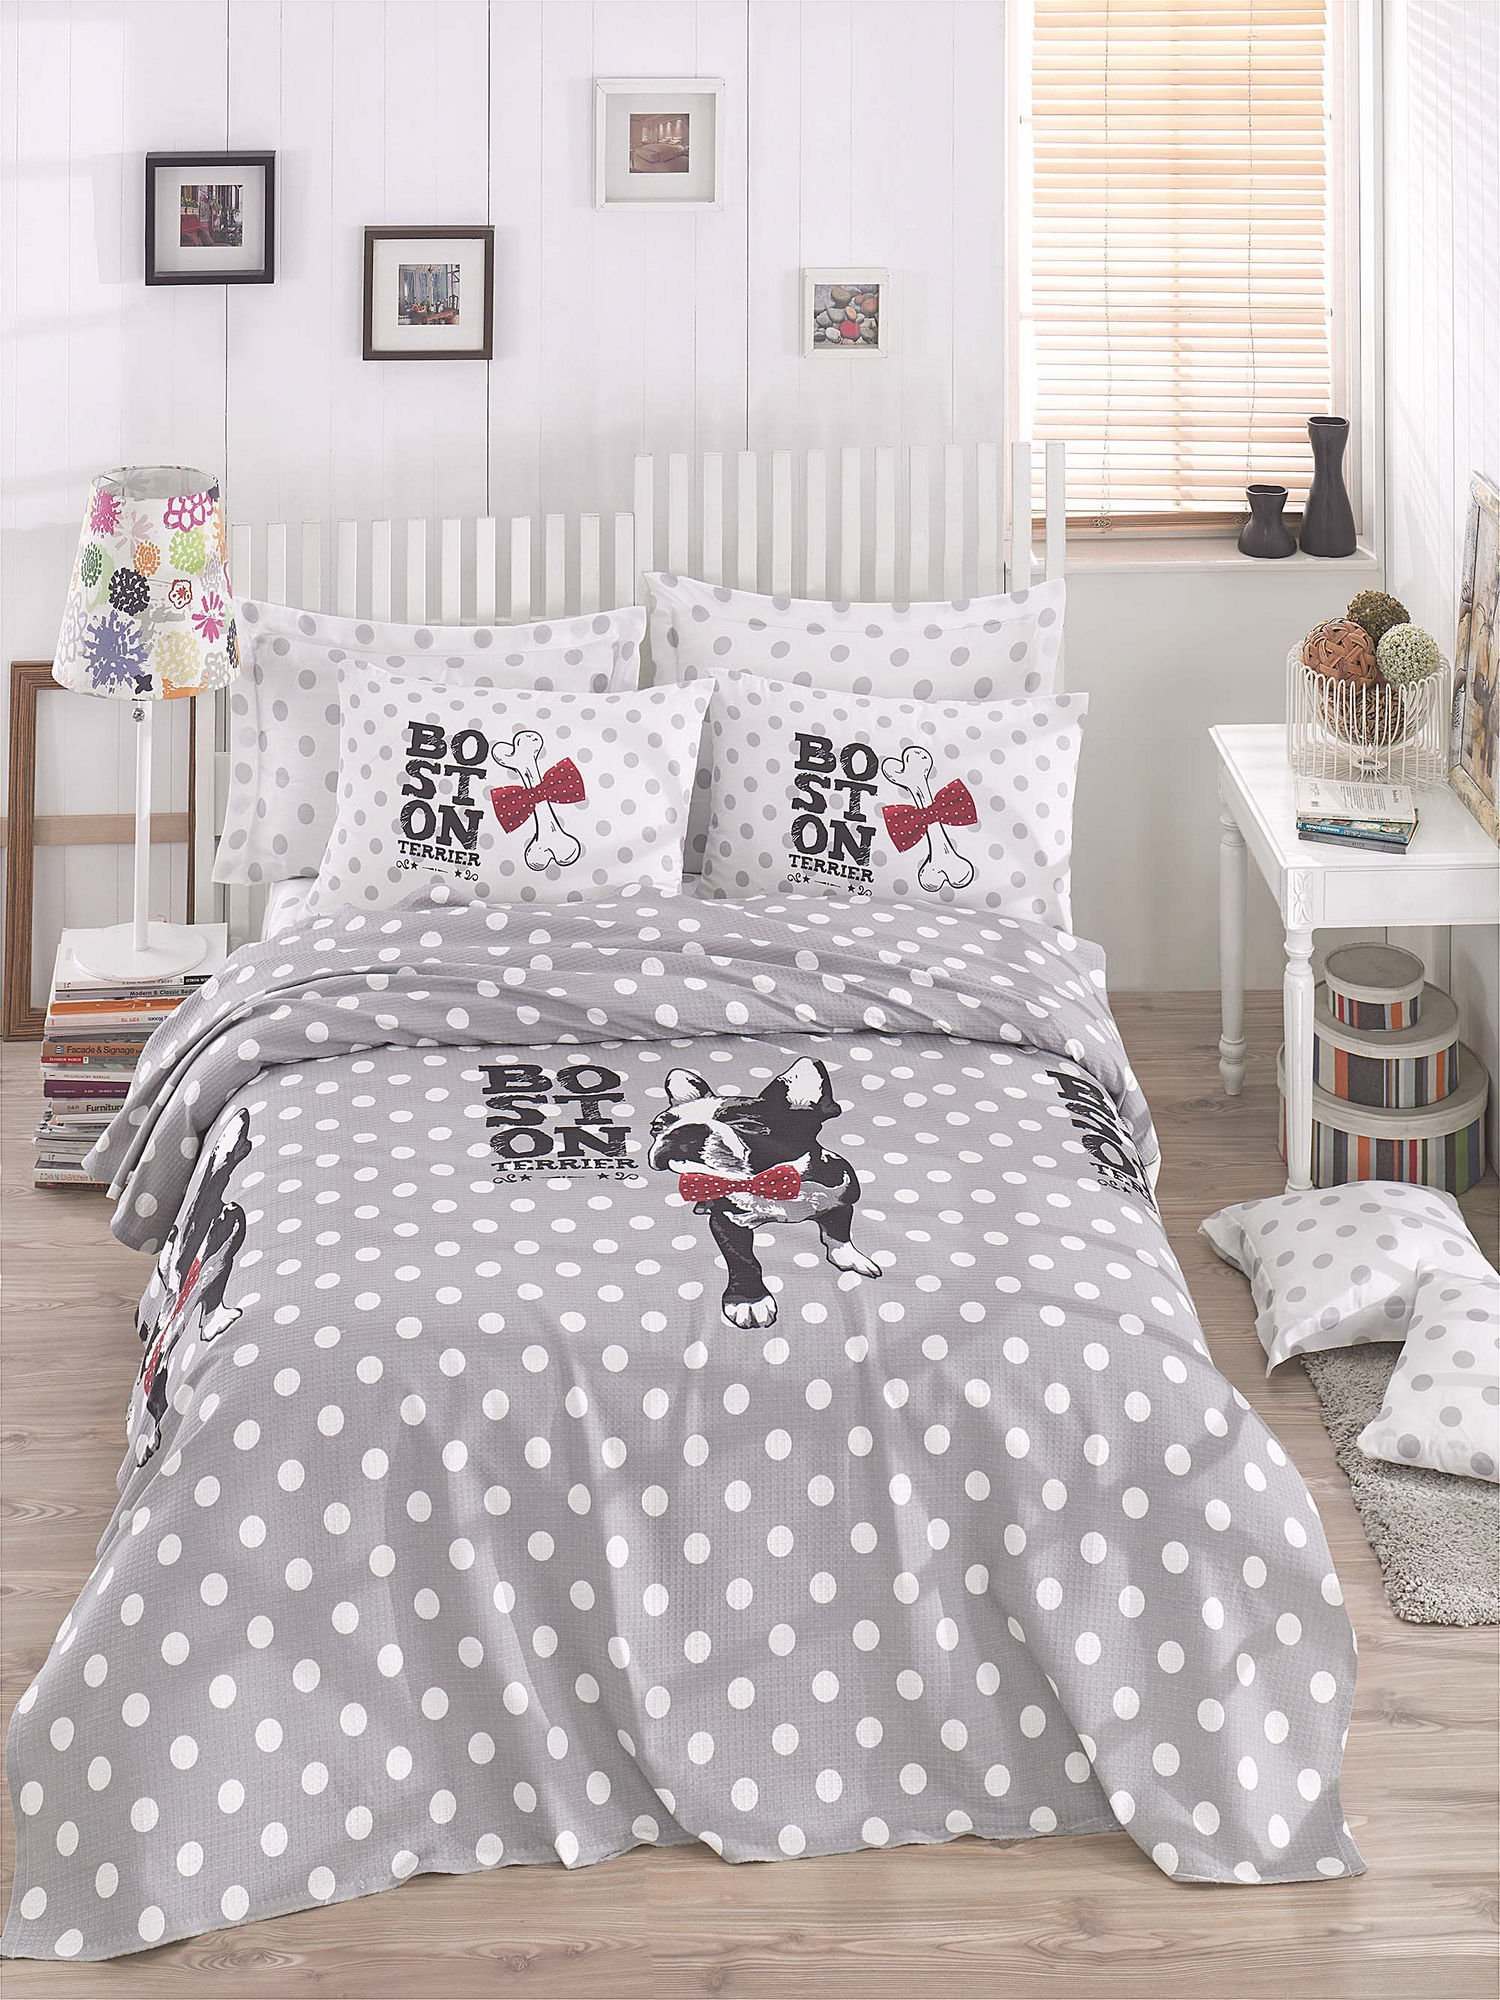 LaModaHome Luxury Soft Colored Full and Double Bedroom Bedding 100% Cotton Super Coverlet (Pique) Thin Coverlet Summer/Boston Terrier Dog Animal Sweet White Background Ribbon /